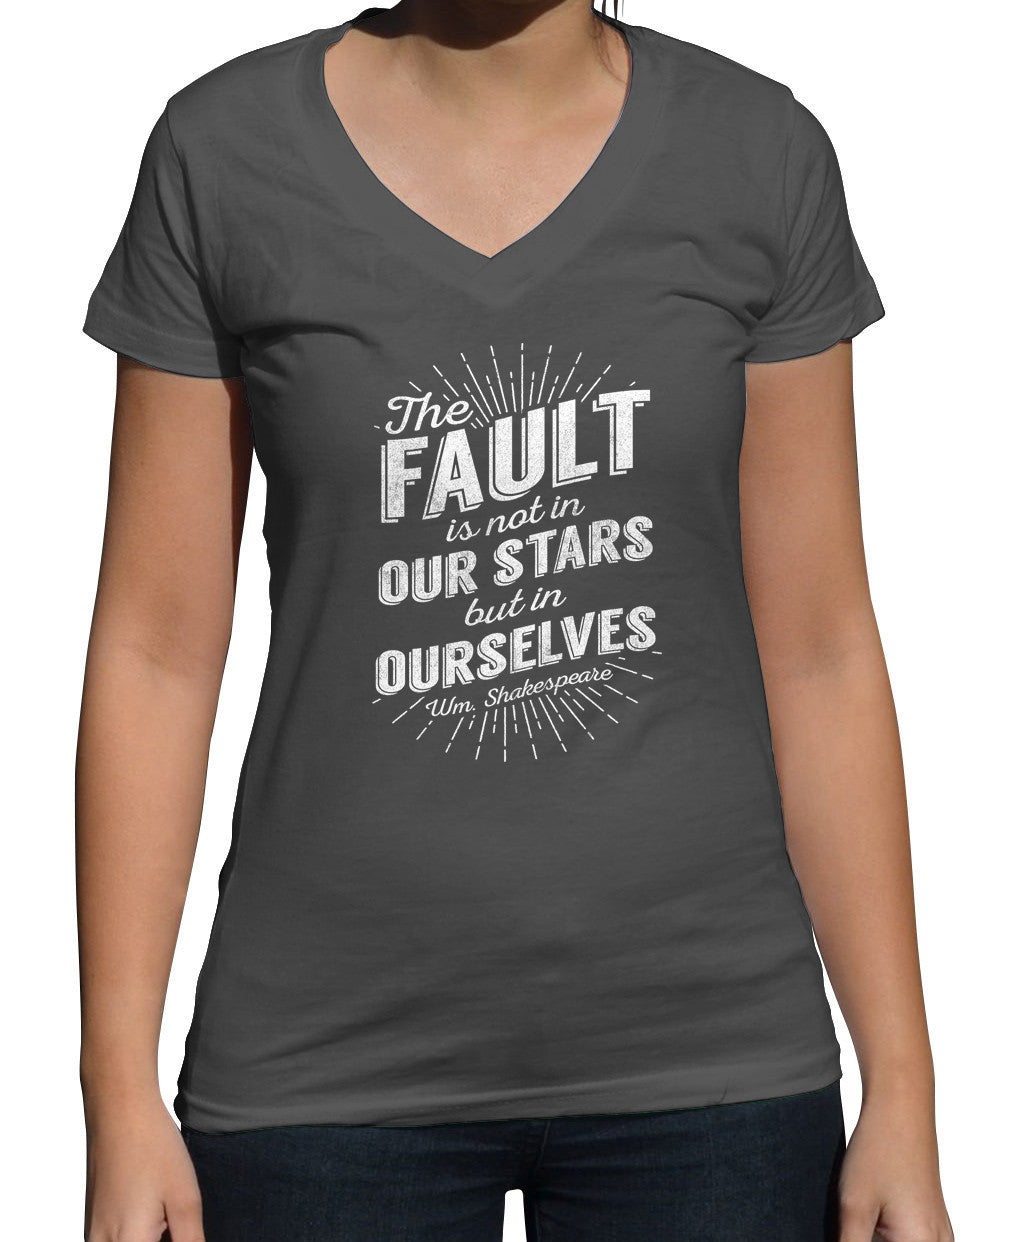 Women's The Fault is Not in Our Stars but in Ourselves Vneck T-Shirt - Juniors Fit